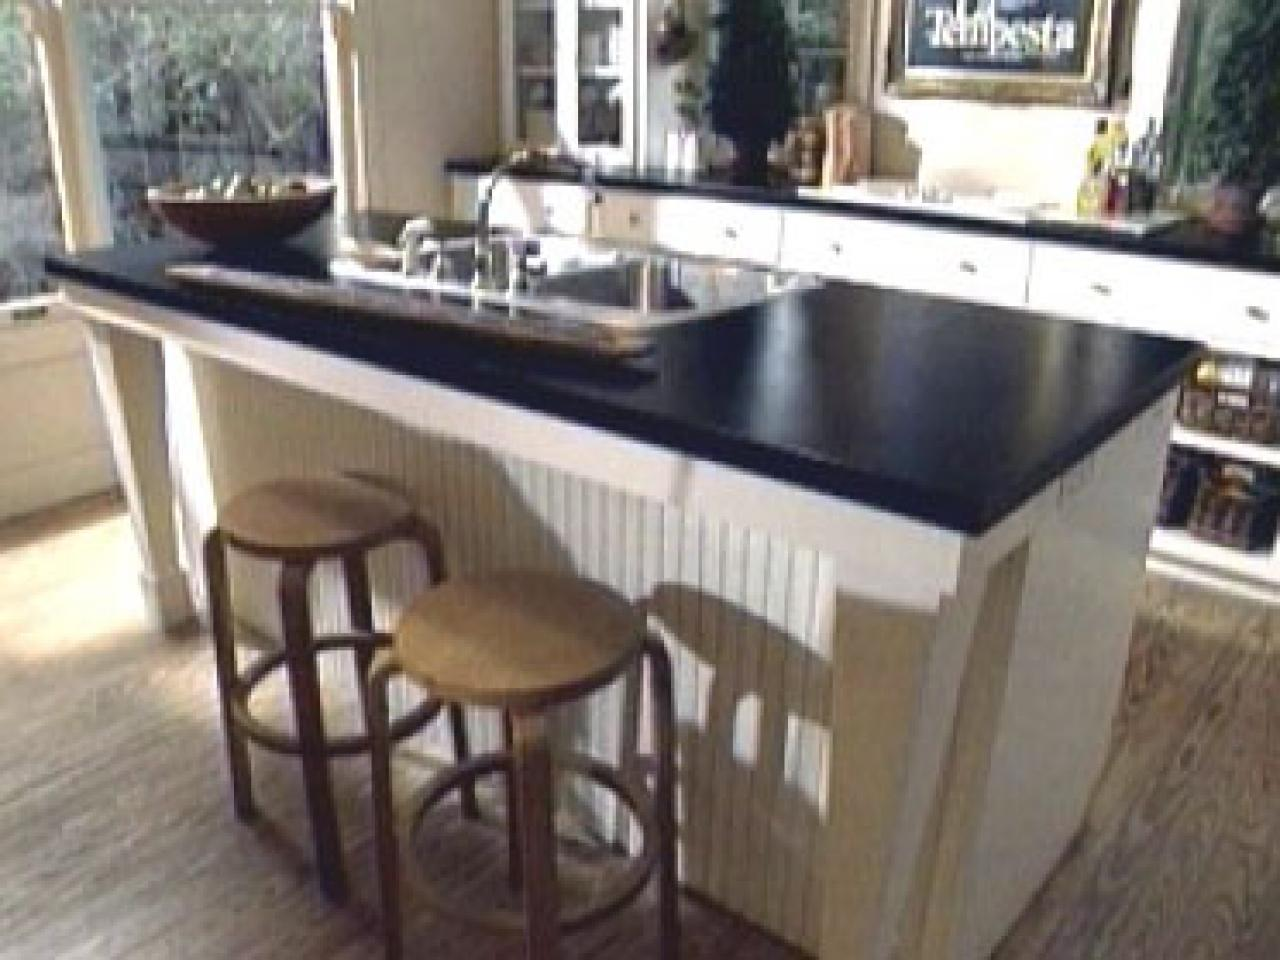 nice Pictures Of Kitchen Islands With Sinks #5: A Kitchen Island Sink